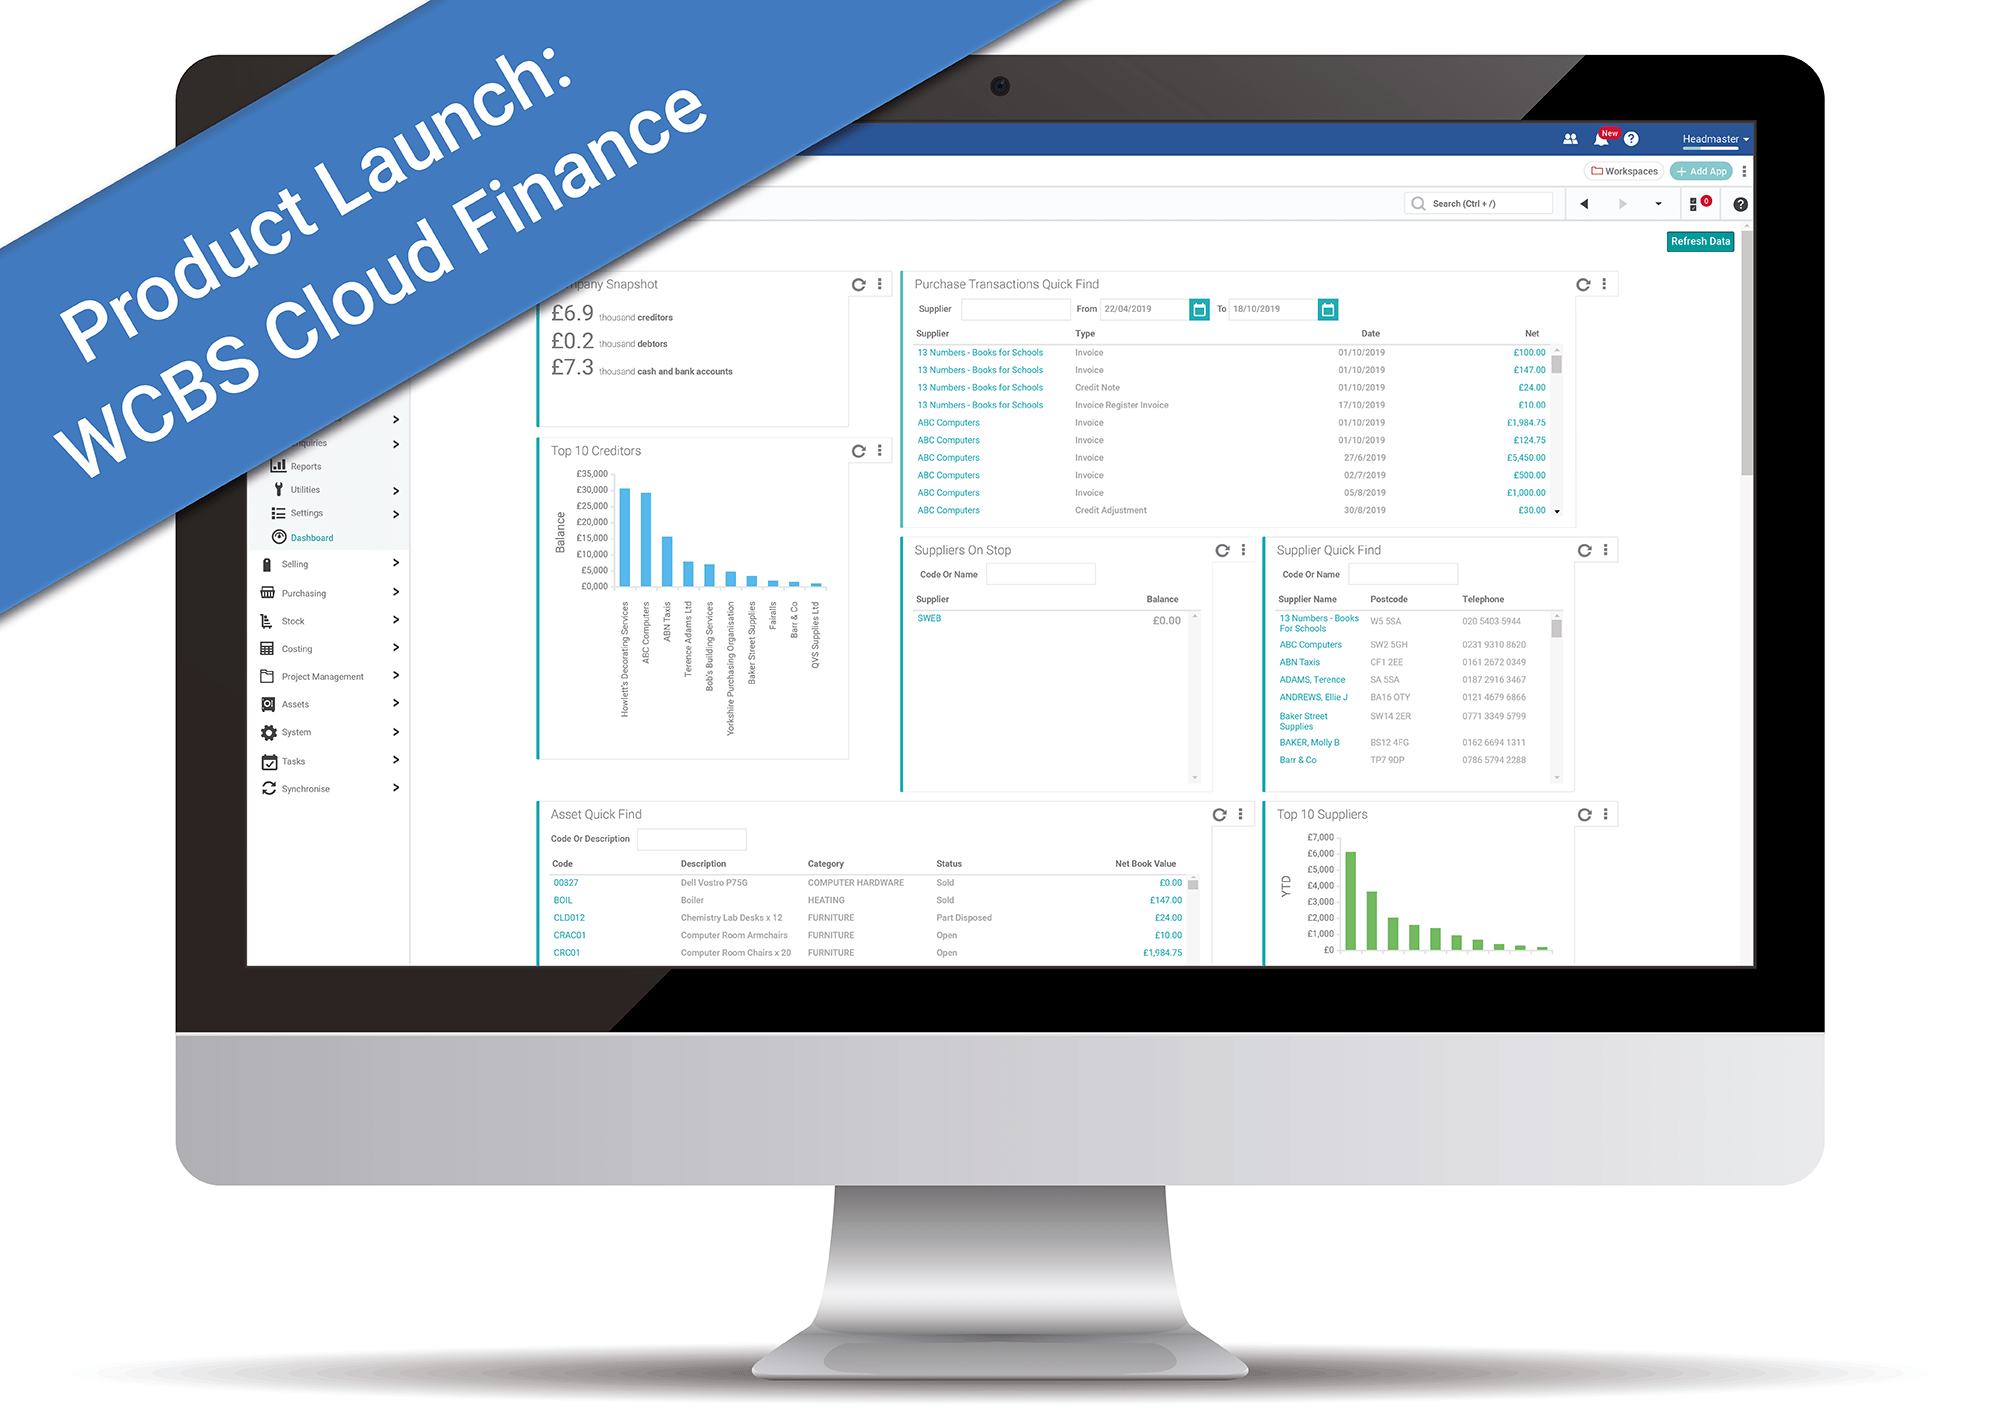 WCBS Cloud Finance Software for Independent Schools